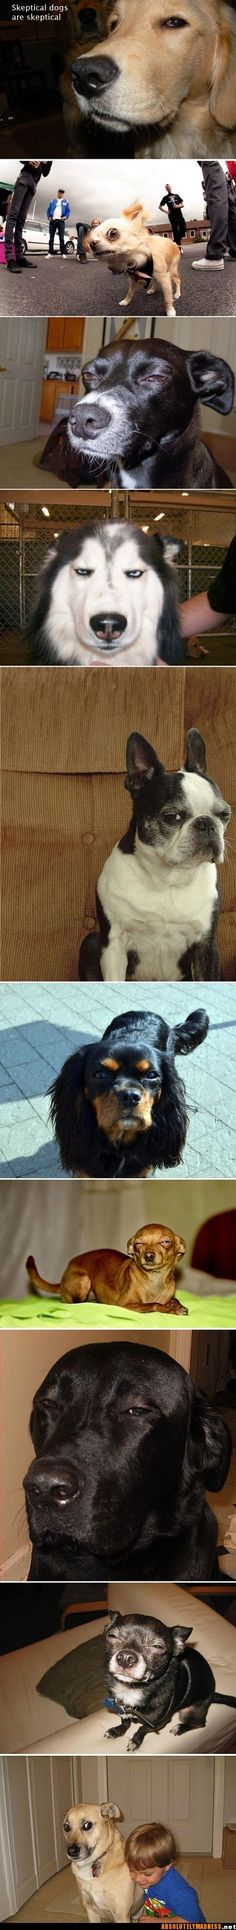 Skeptical dogs are skeptical